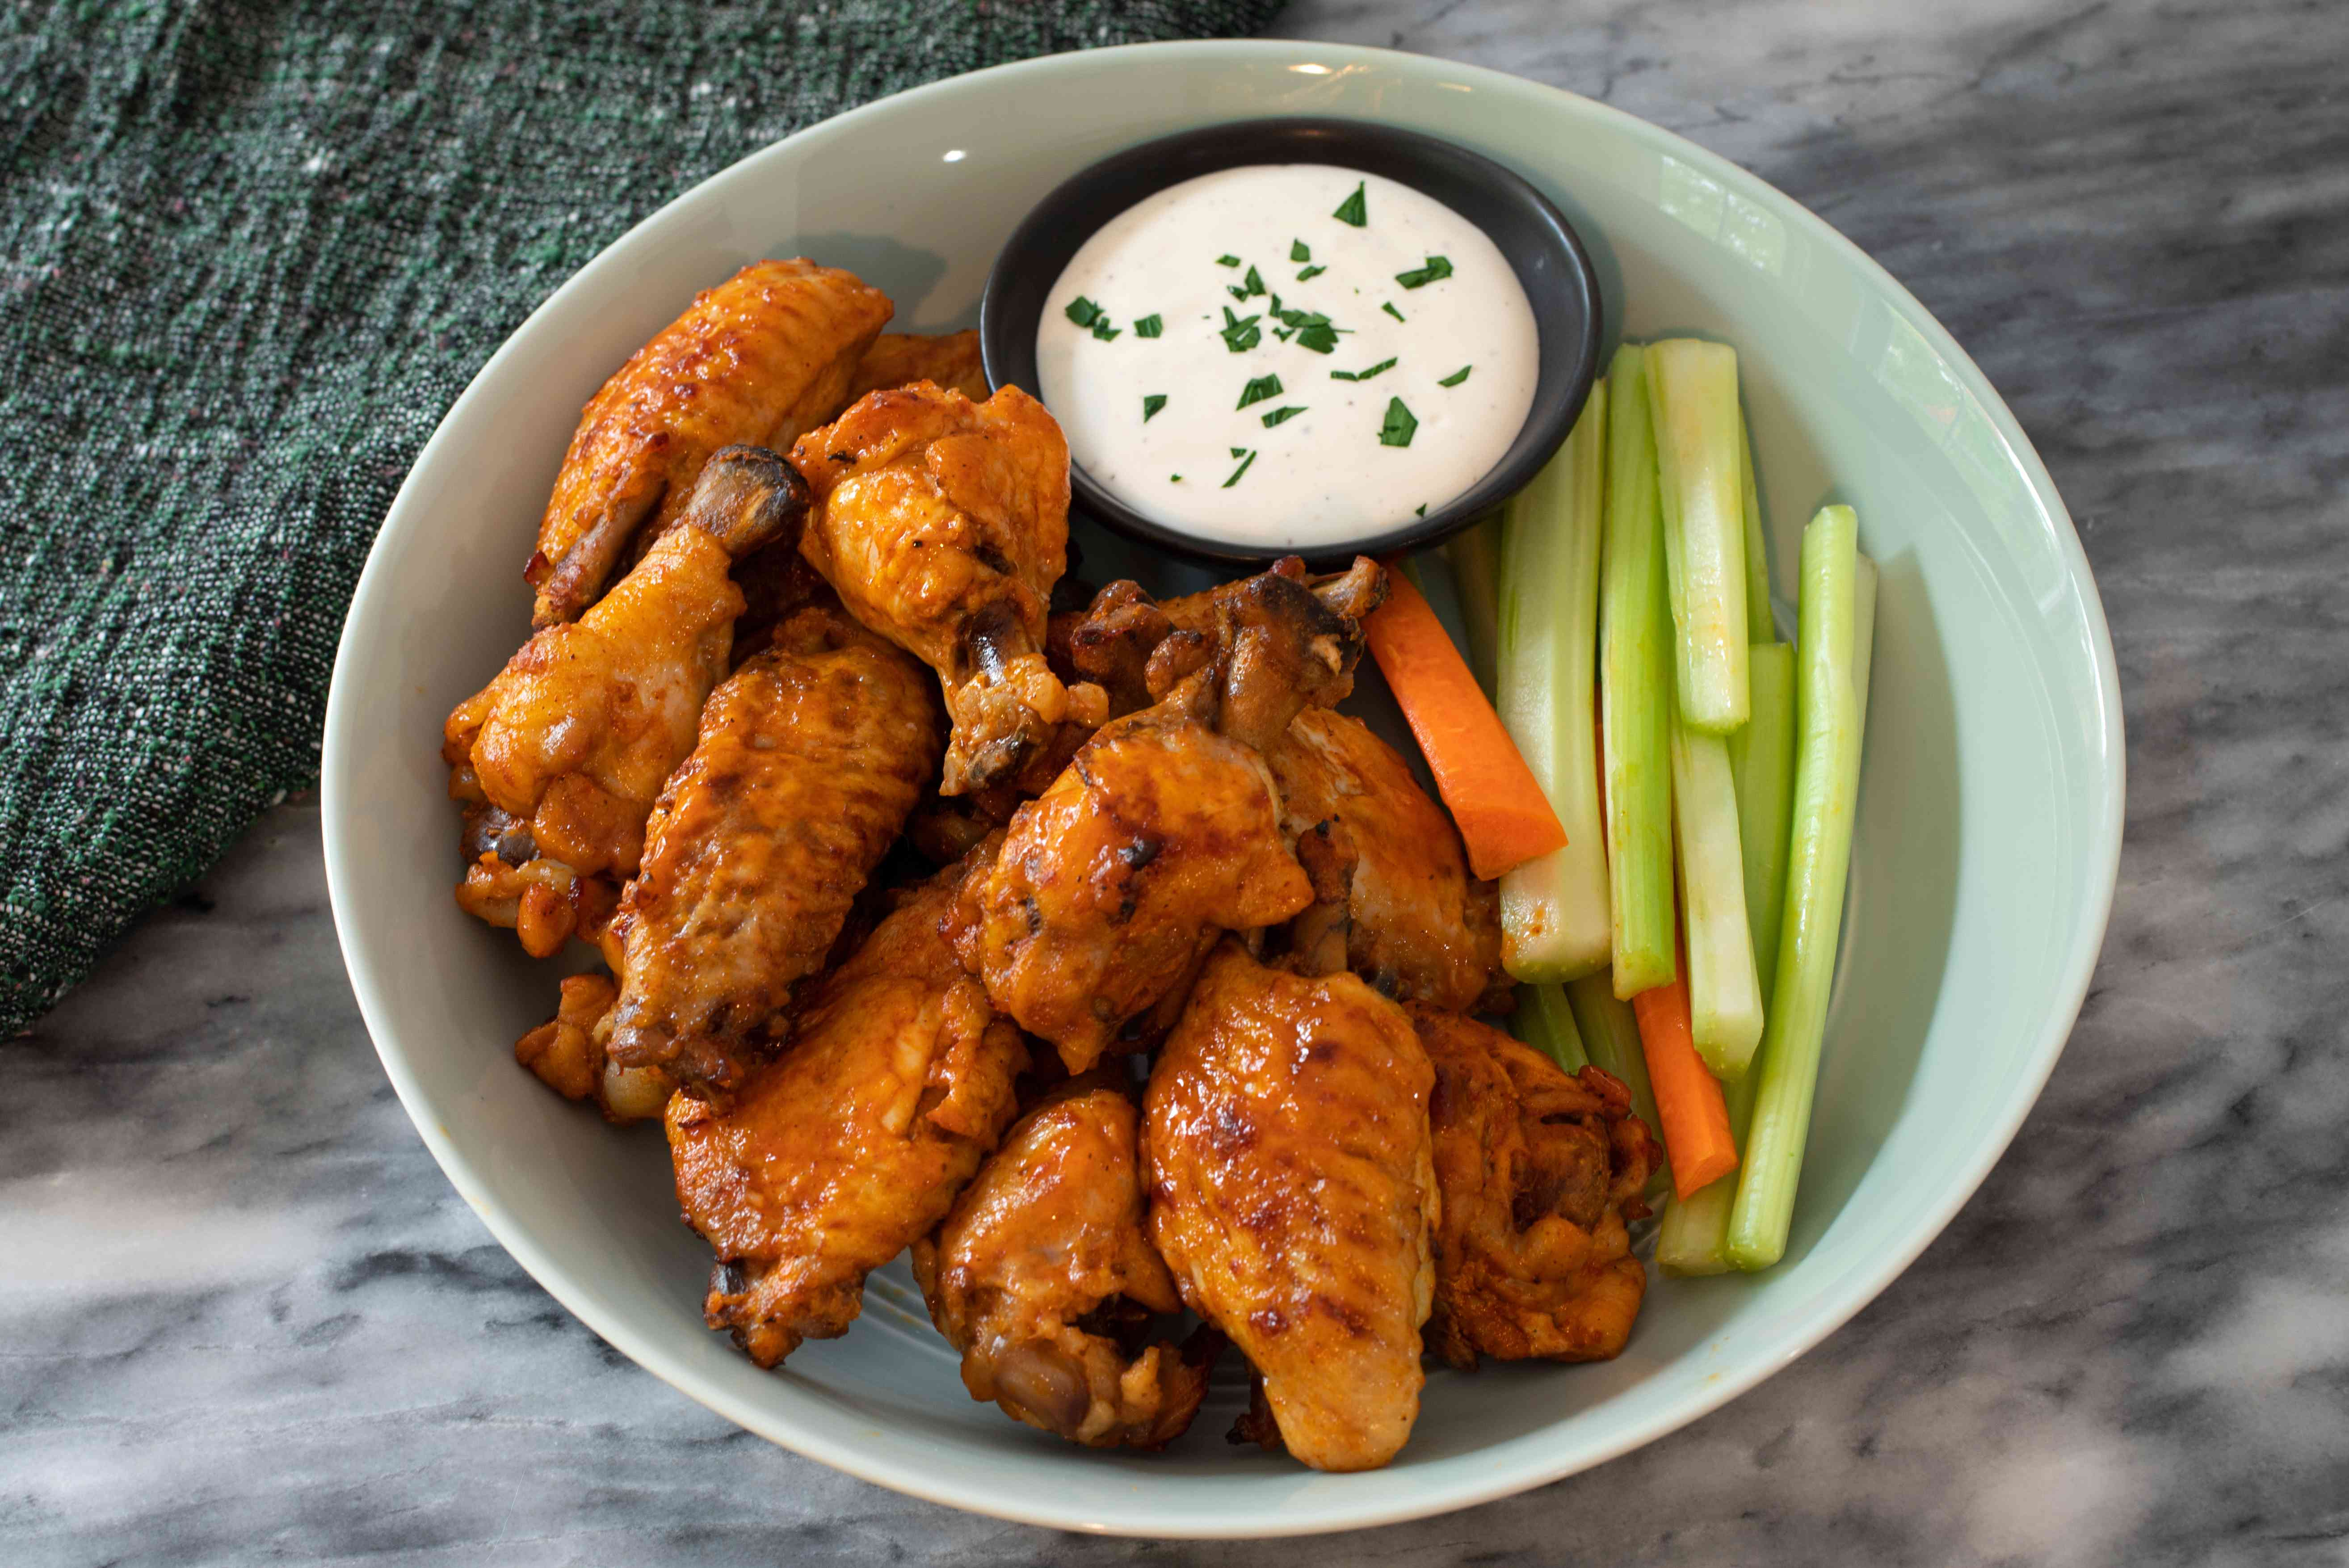 Buffalo wings made in an Instant Pot served with celery and carrot sticks and dip